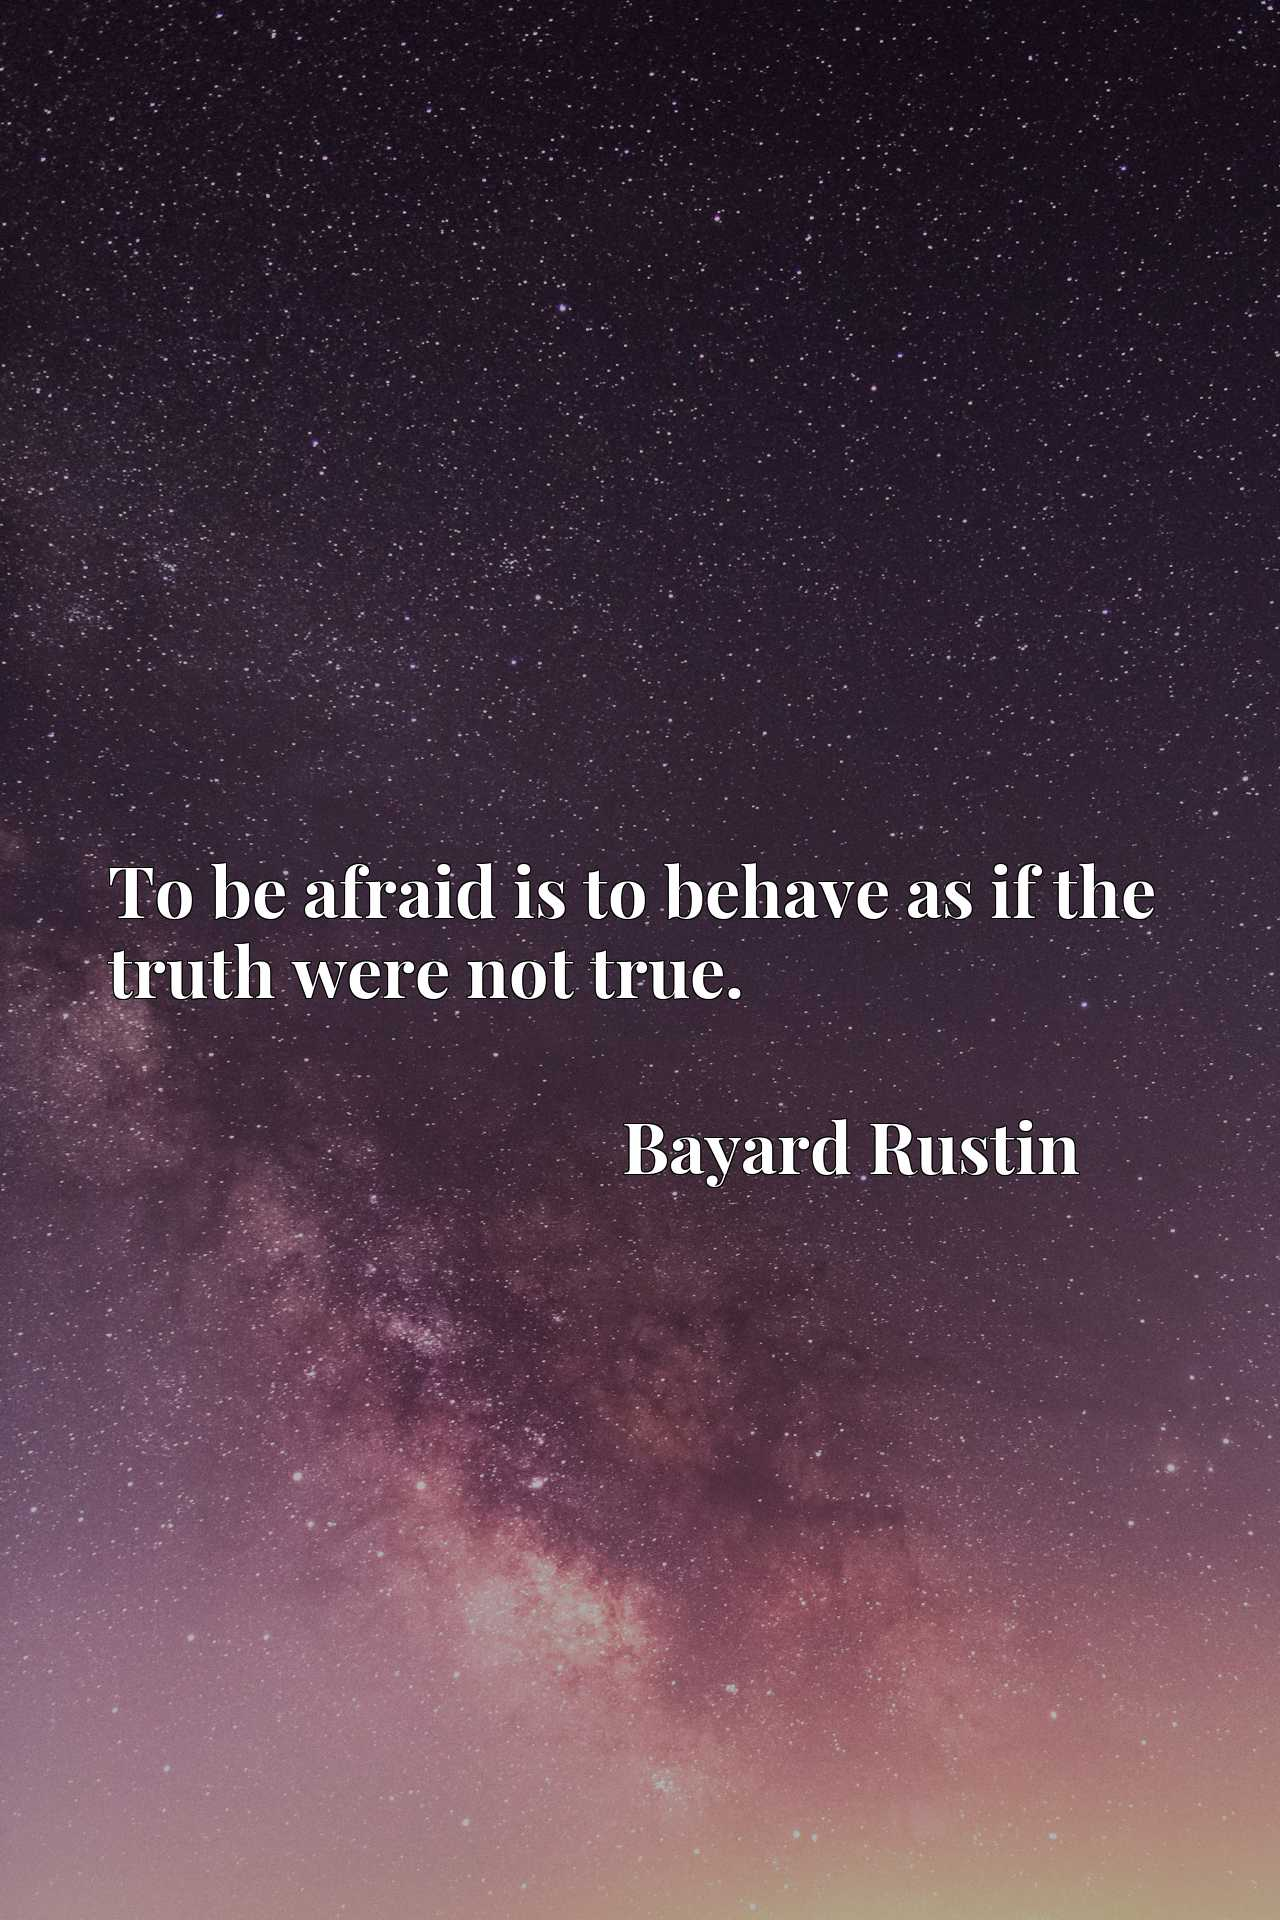 Quote Picture :To be afraid is to behave as if the truth were not true.